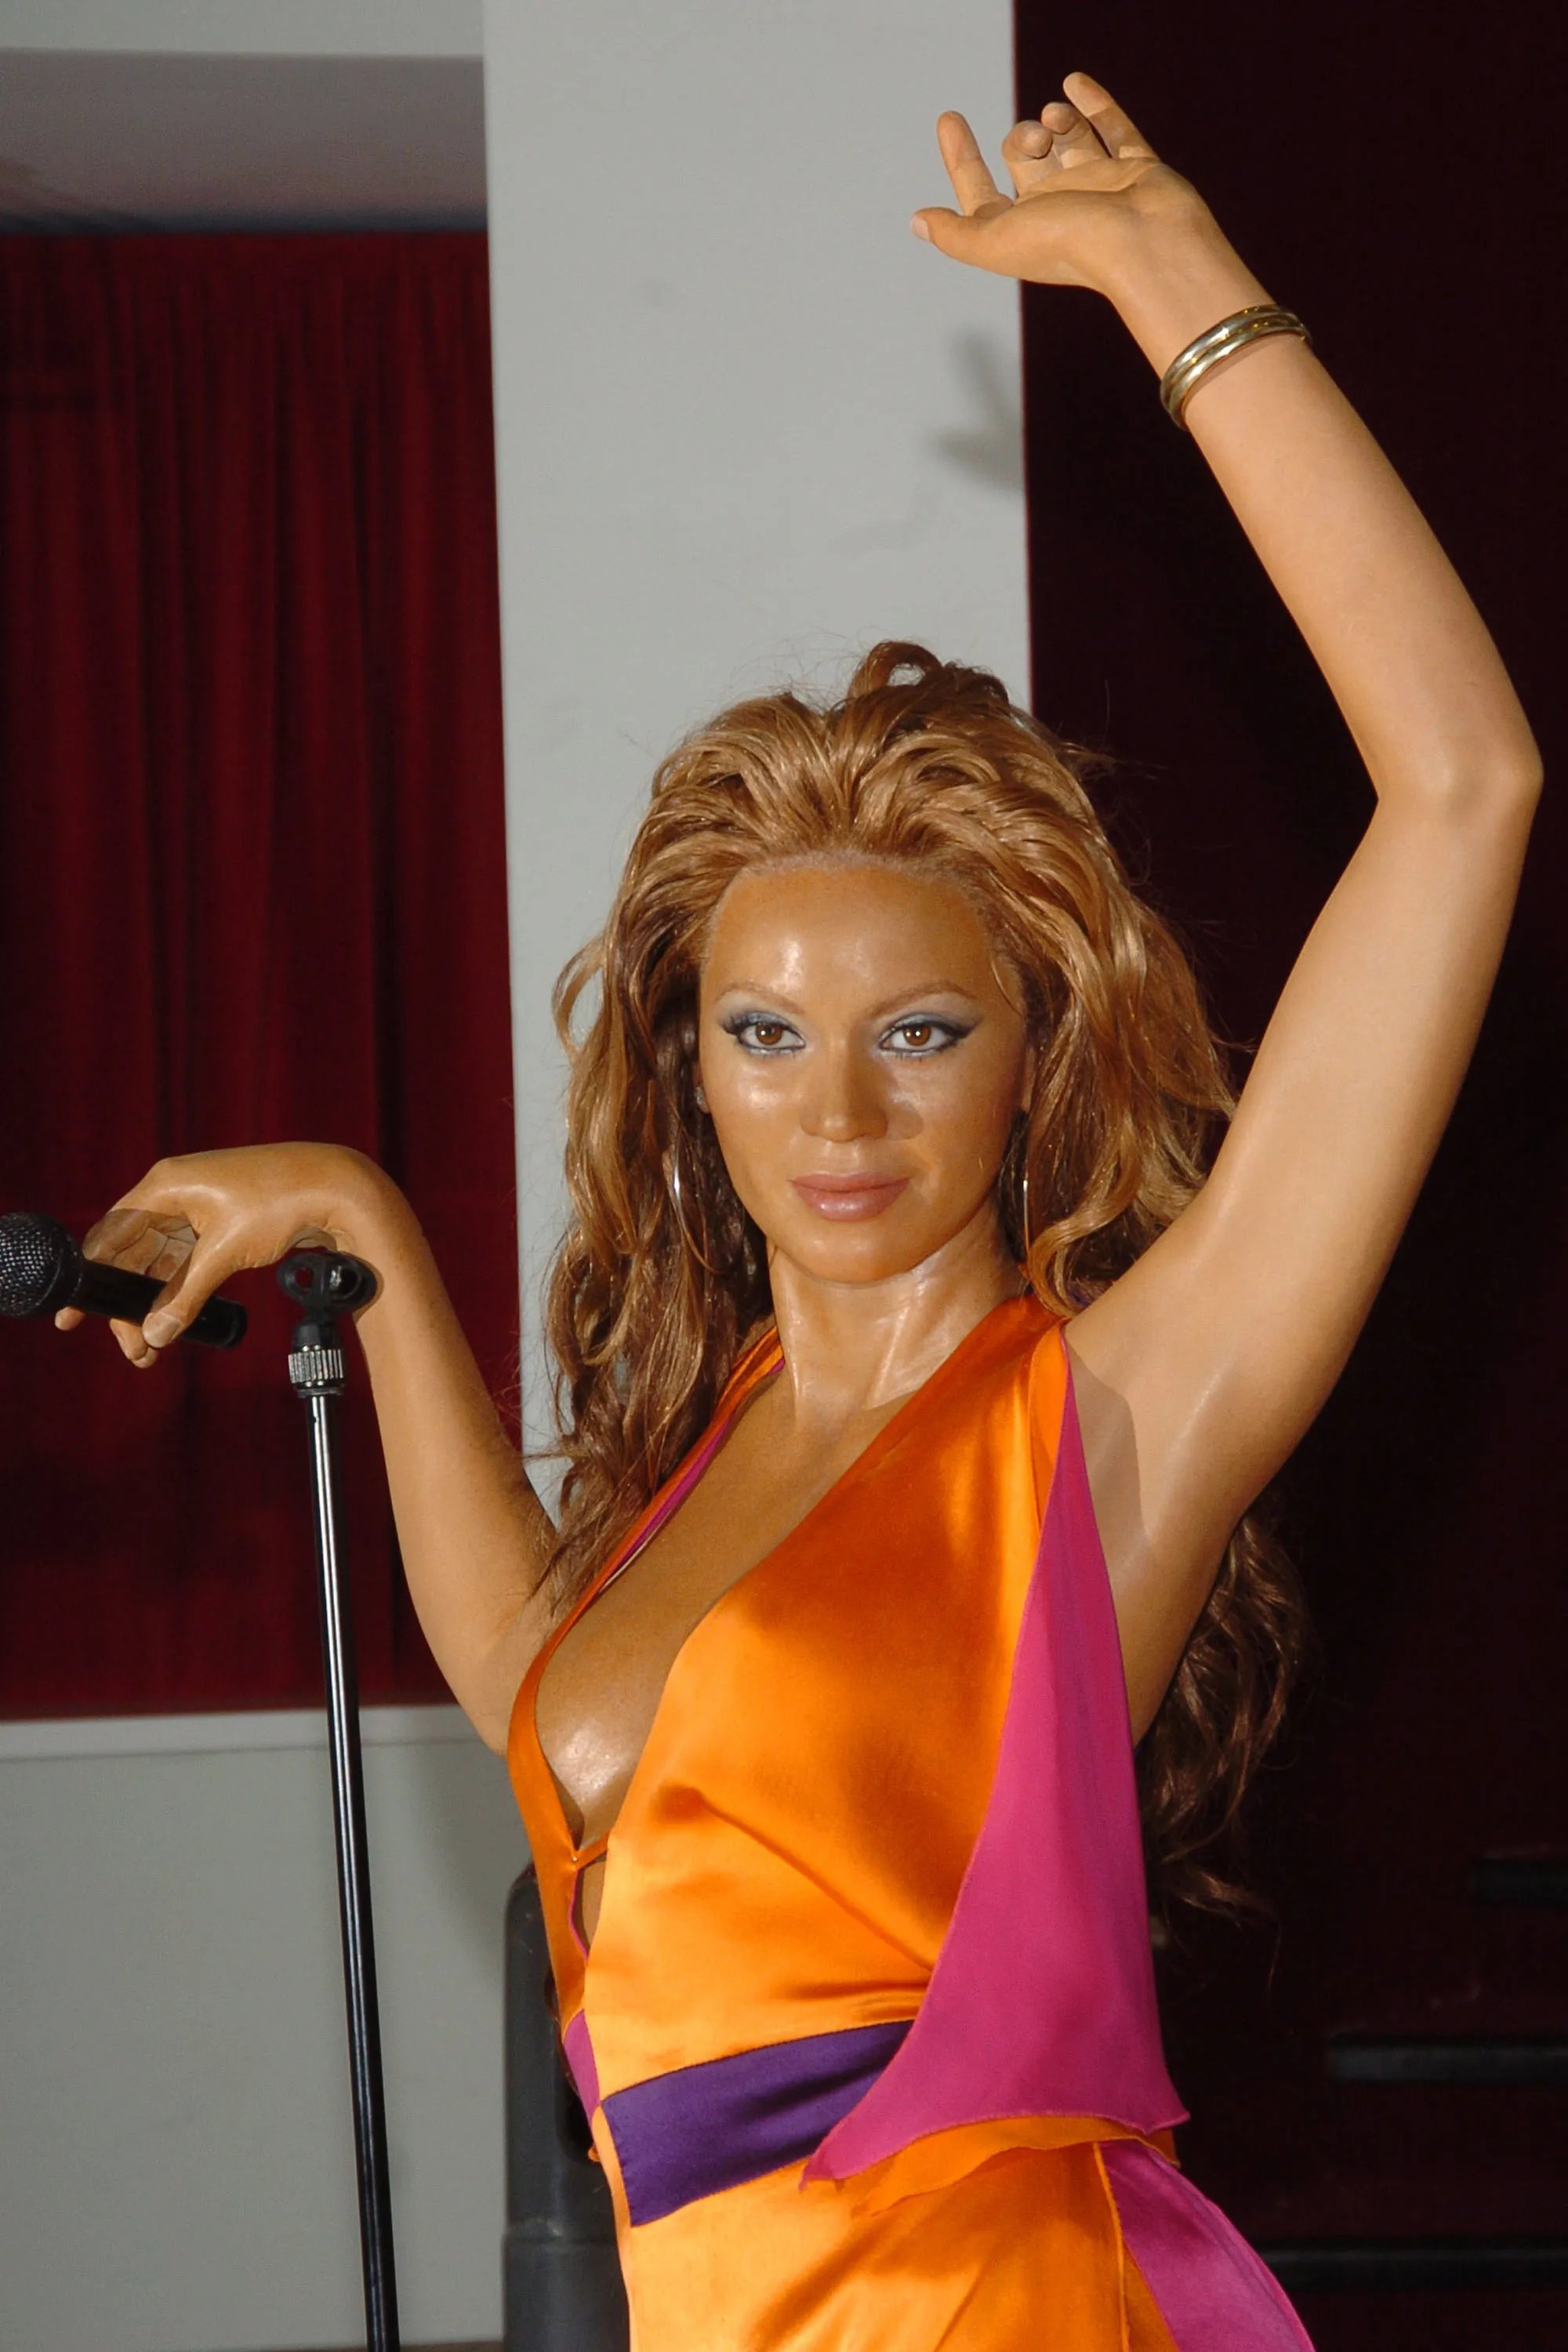 photos bad madame tussaud s statues of